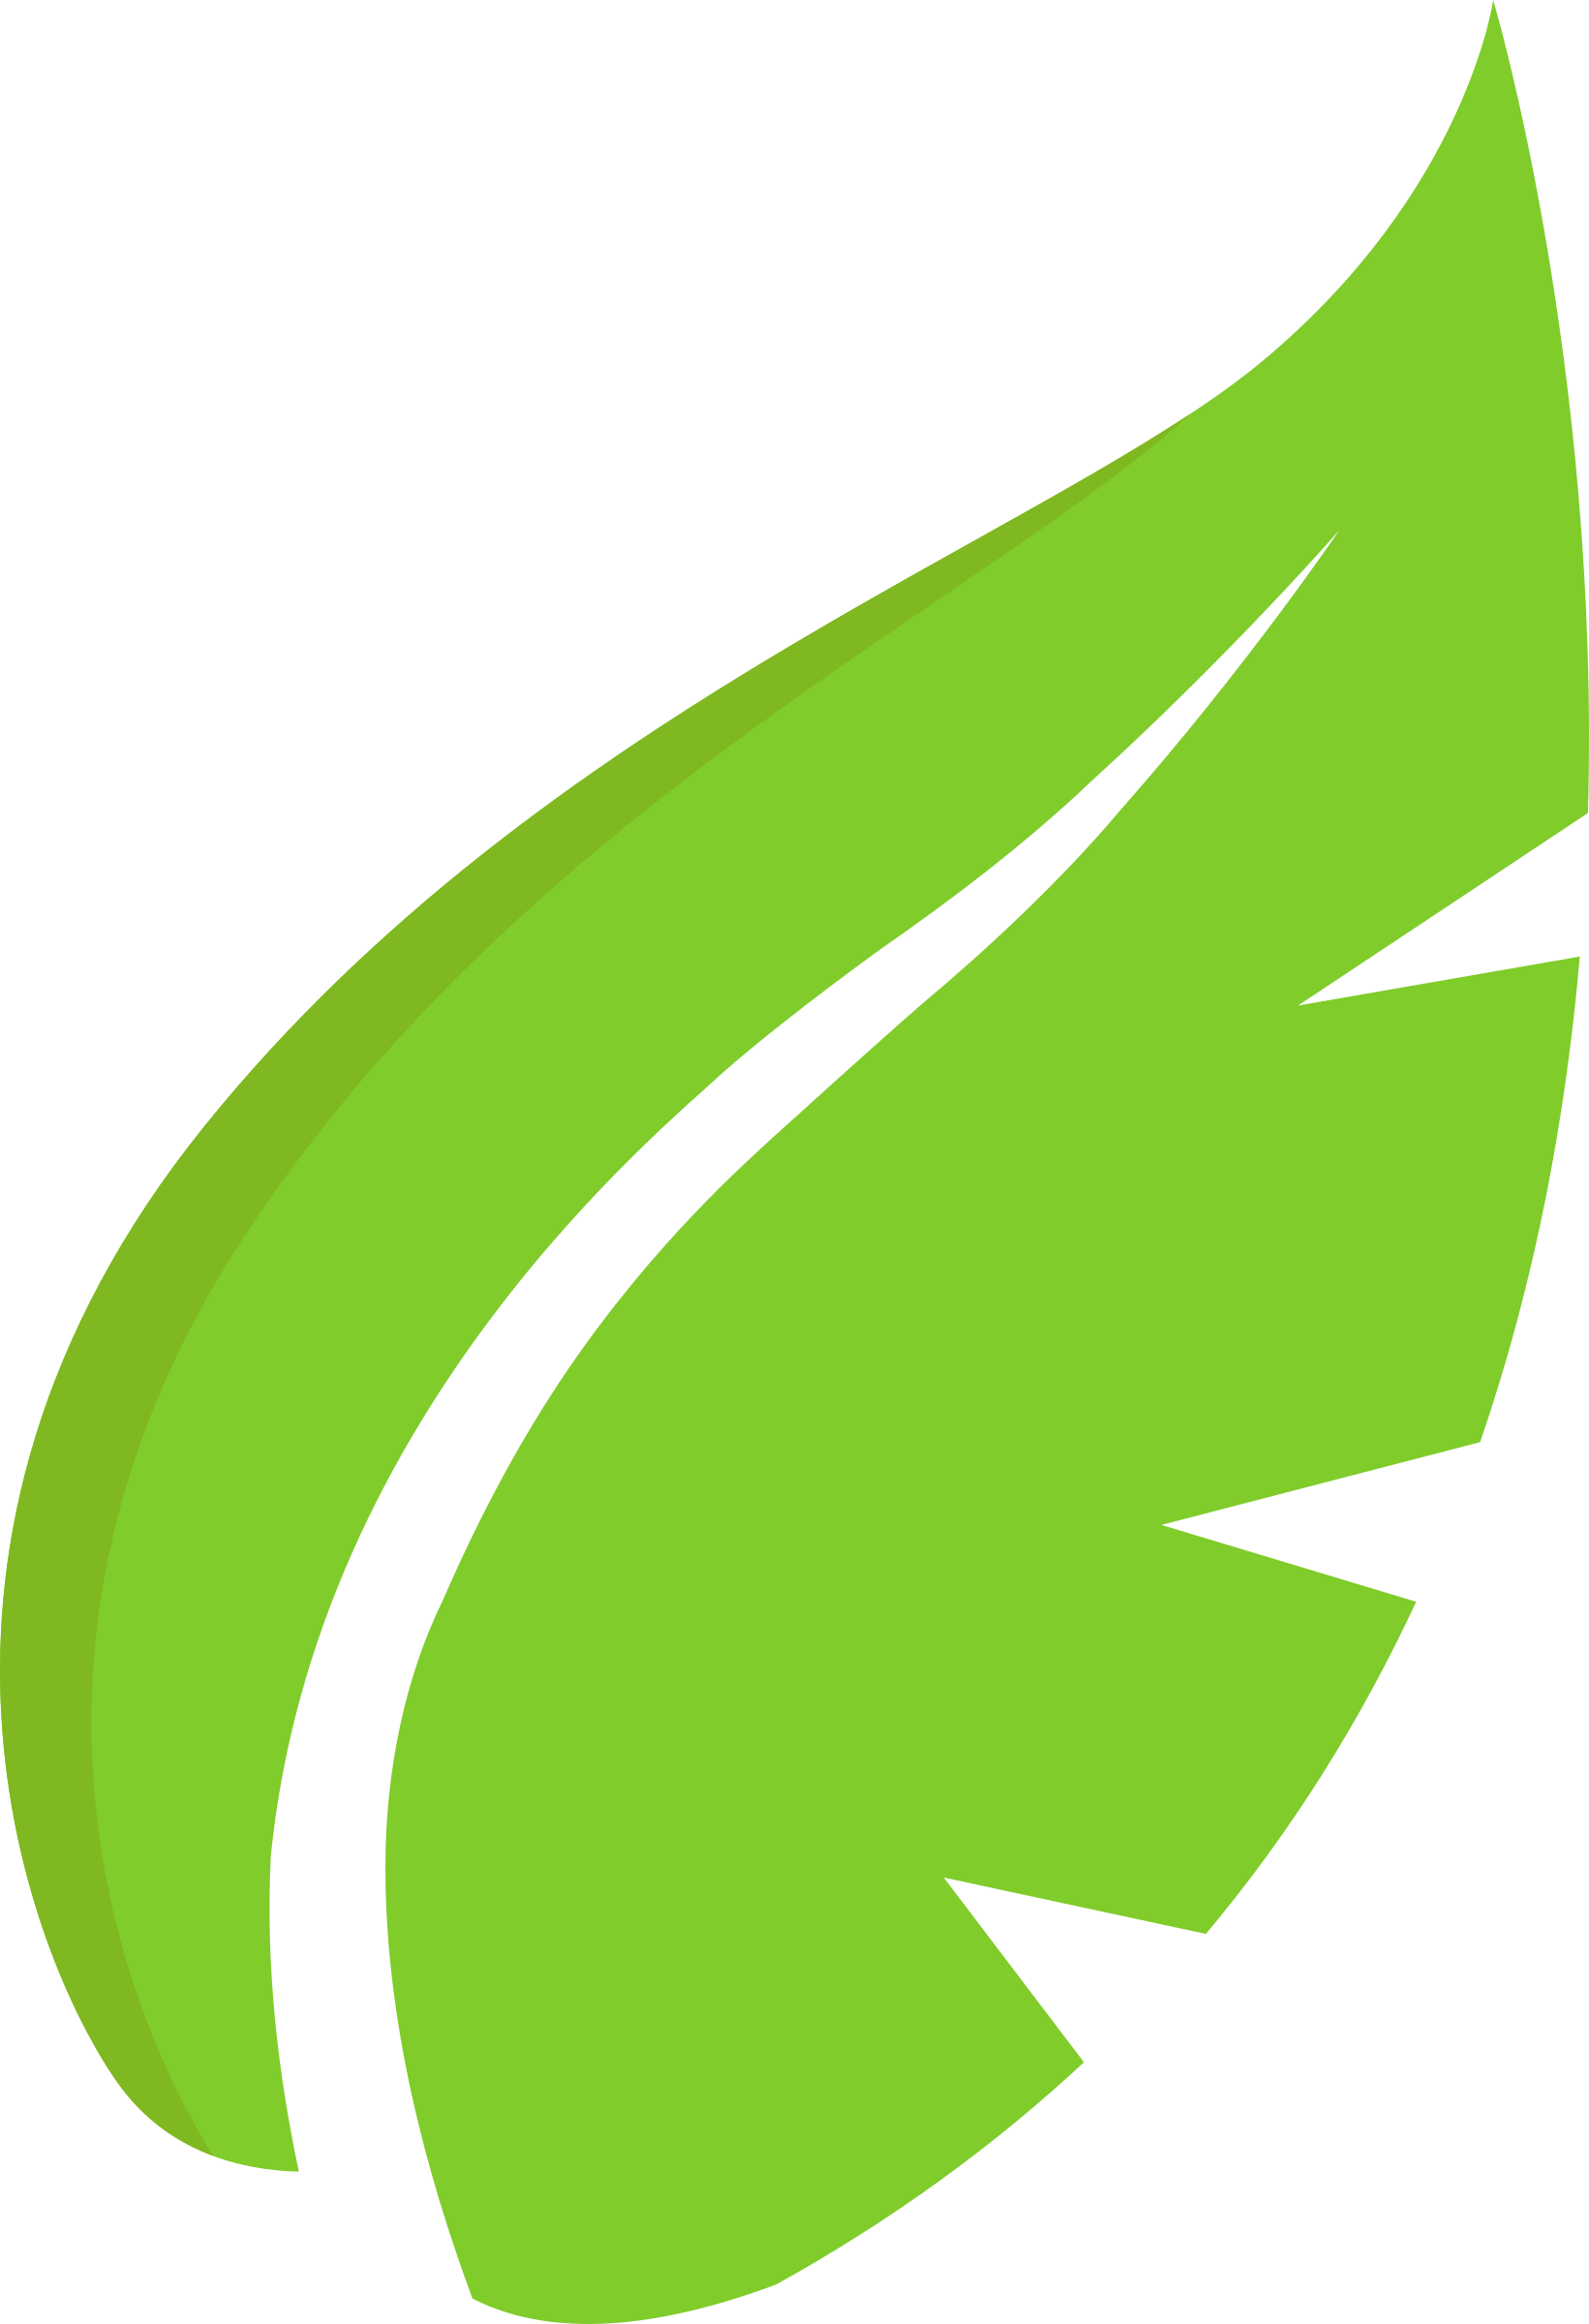 Leaf,plant,green,ecology,free vector graphics